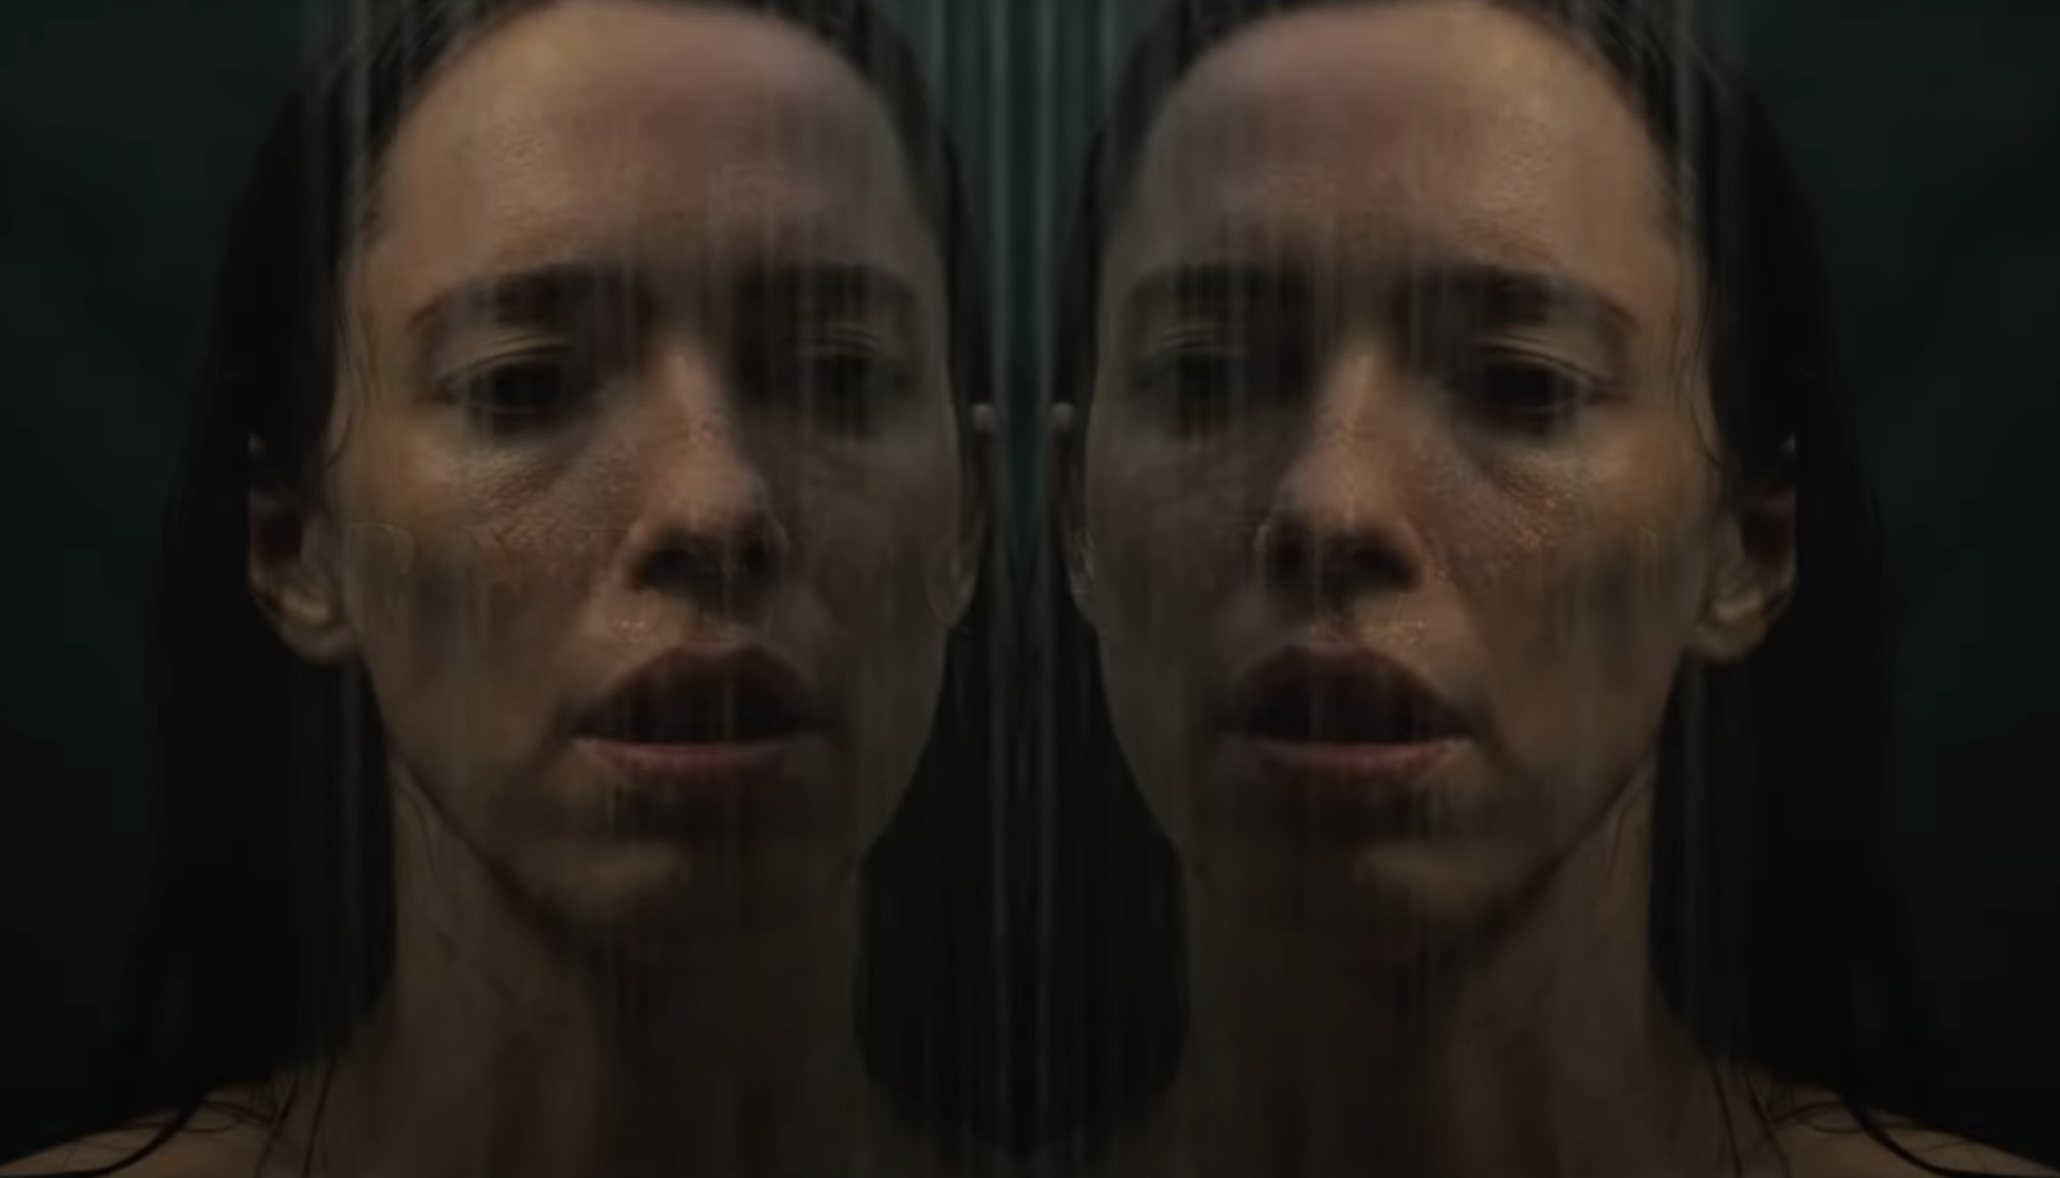 The Night House Trailer: Rebecca Hall Stars in Ghostly Horror Movie | IndieWire